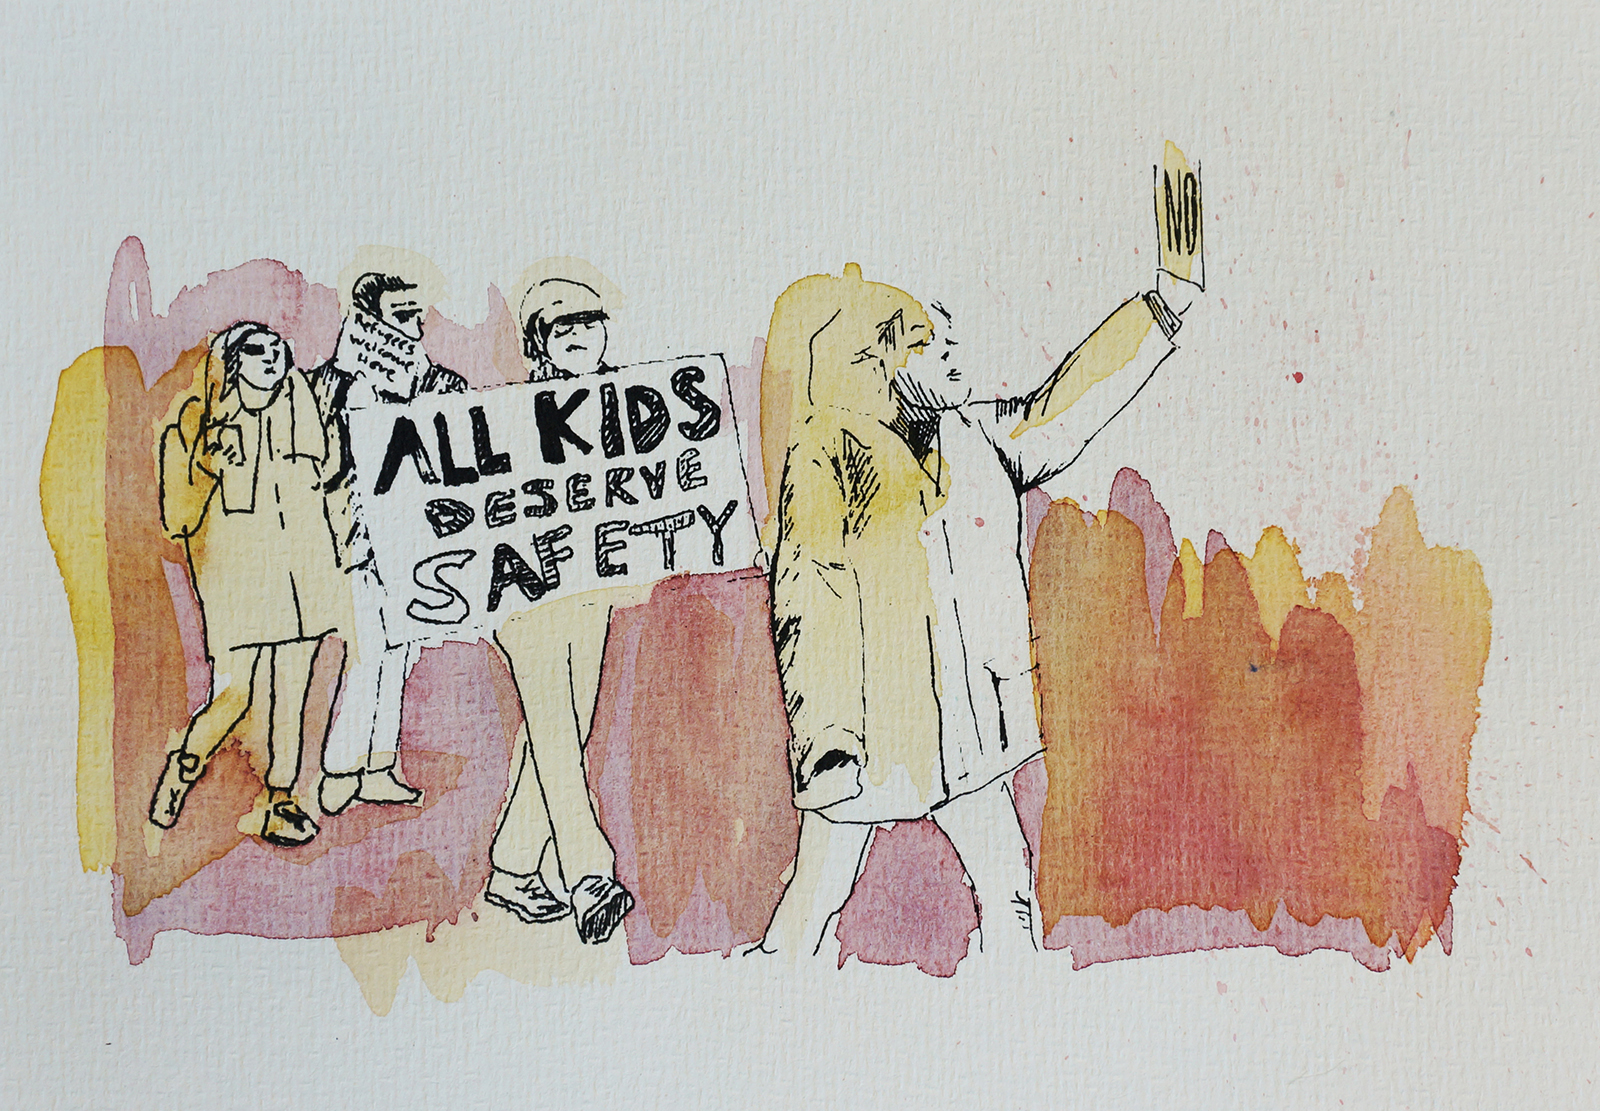 Ape_Bleakney_March Mixed Media - 'All Kids (6)', 6.5''x9.5'', Screen Print + Watercolor, 2018 copy.jpg